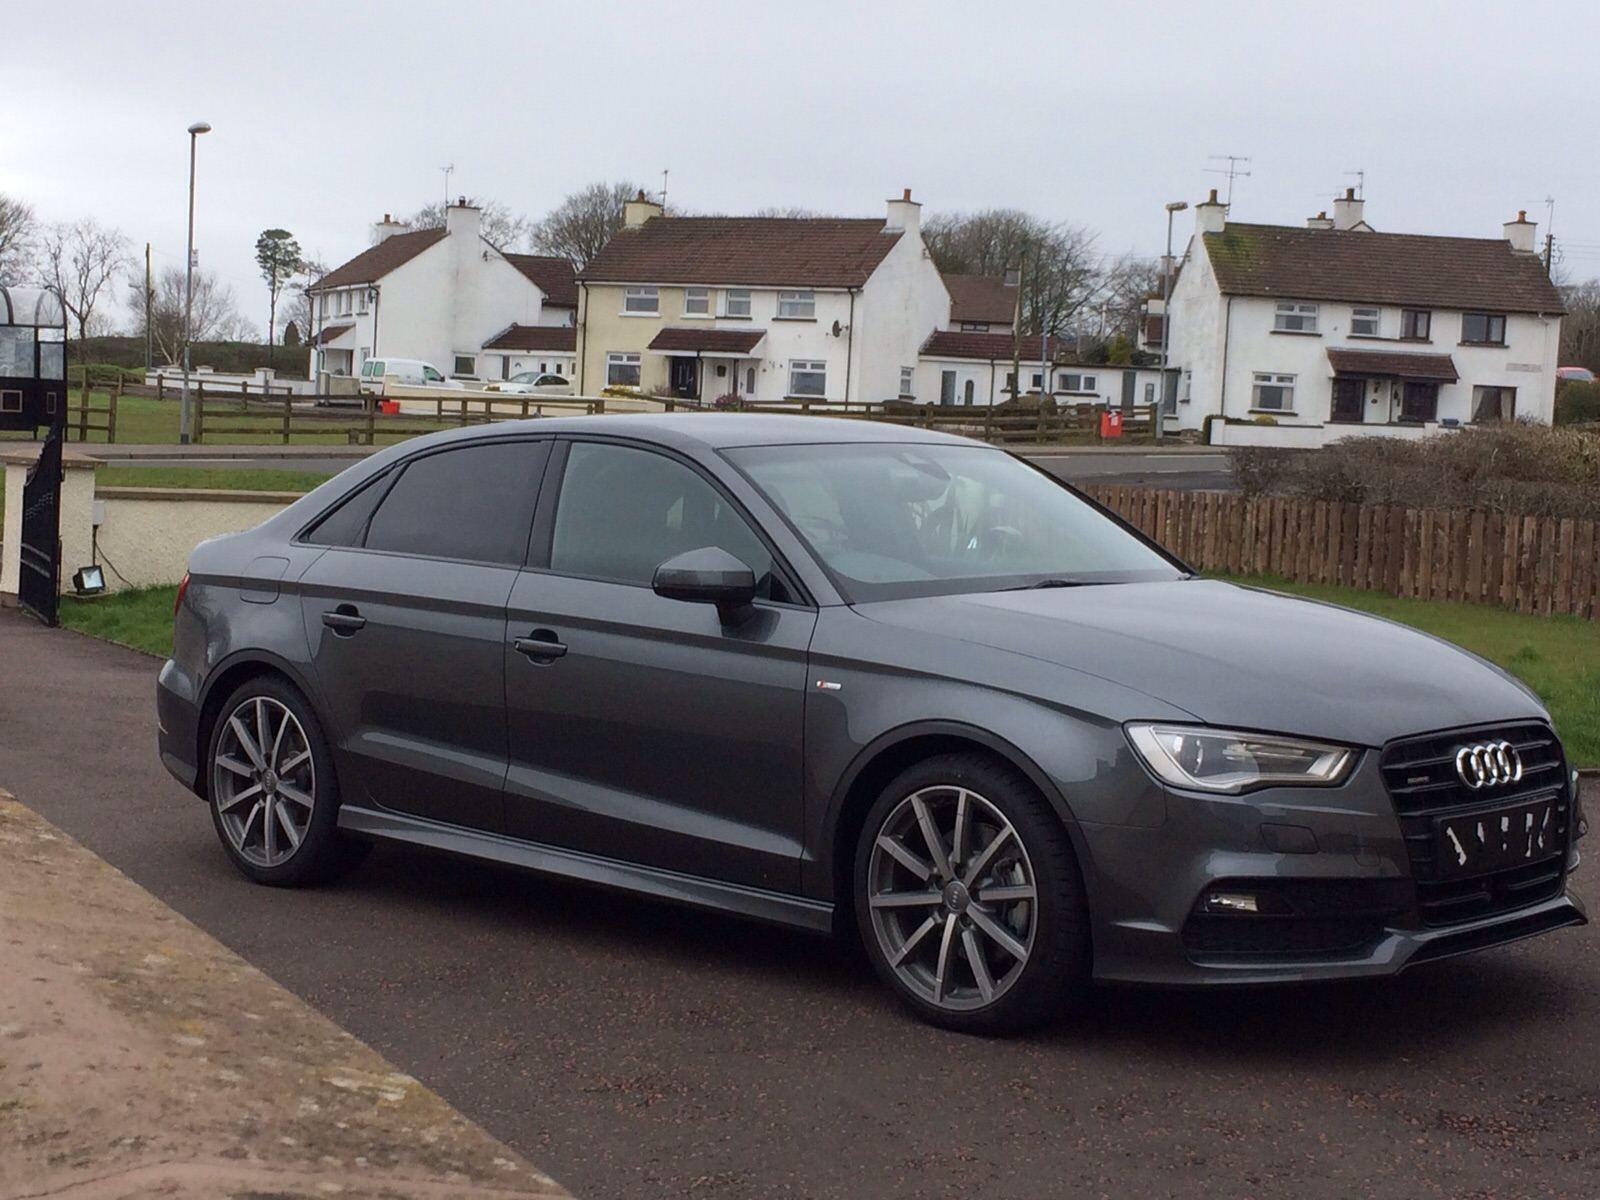 New Member Audi A3 Saloon 2 0tdi 184ps Just Ordered Pics